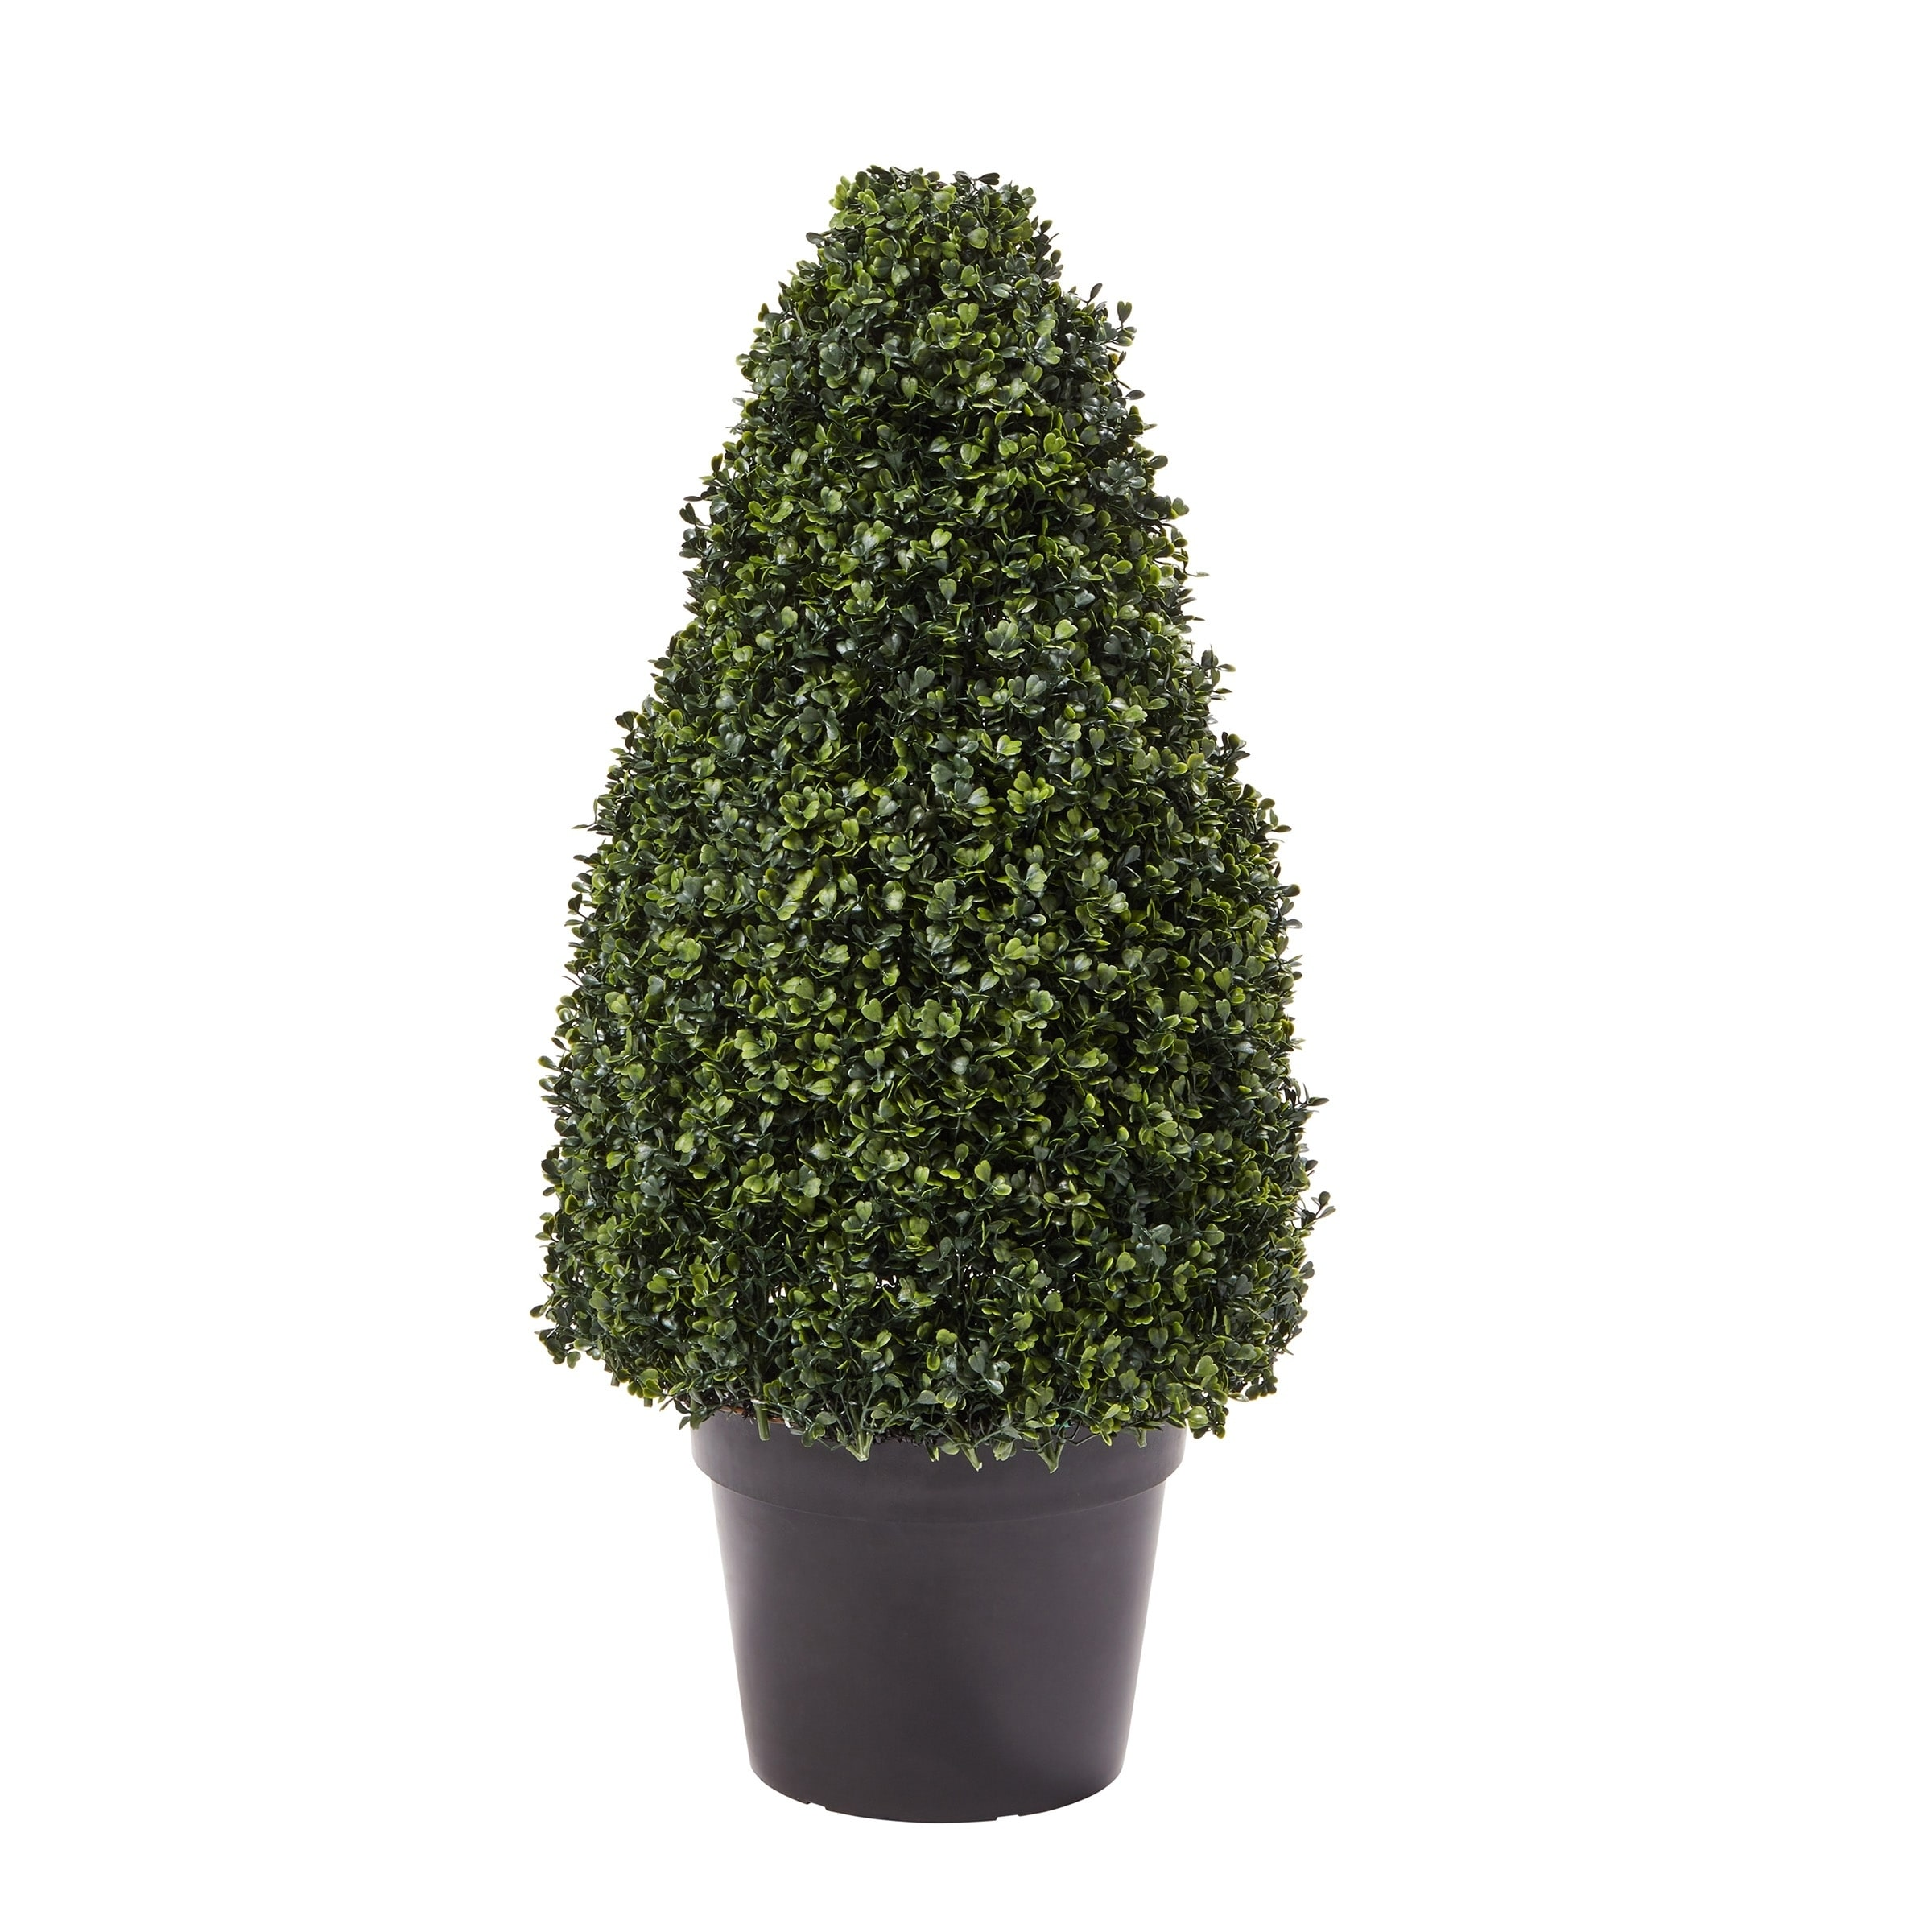 Pure Garden 36 Inch Artificial Boxwood Topiary Tower Style Faux Plant In Sturdy Pot Realistic Indoor Or Outdoor Potted Shrub Overstock 27741508